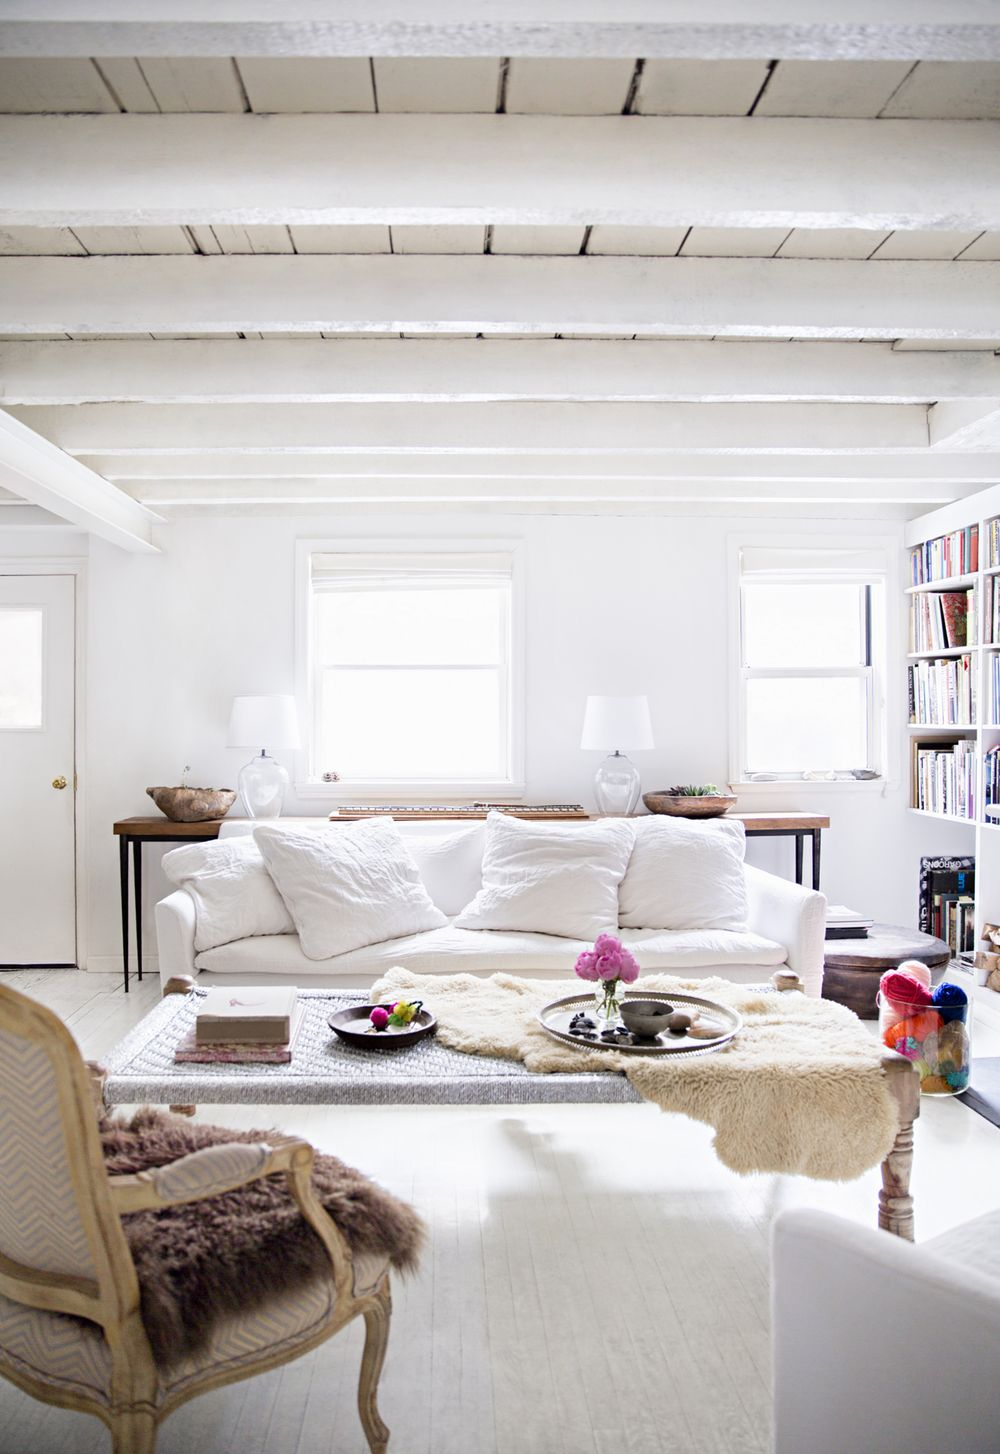 mahalolena   A bright and colorful home in Brooklyn   http ...